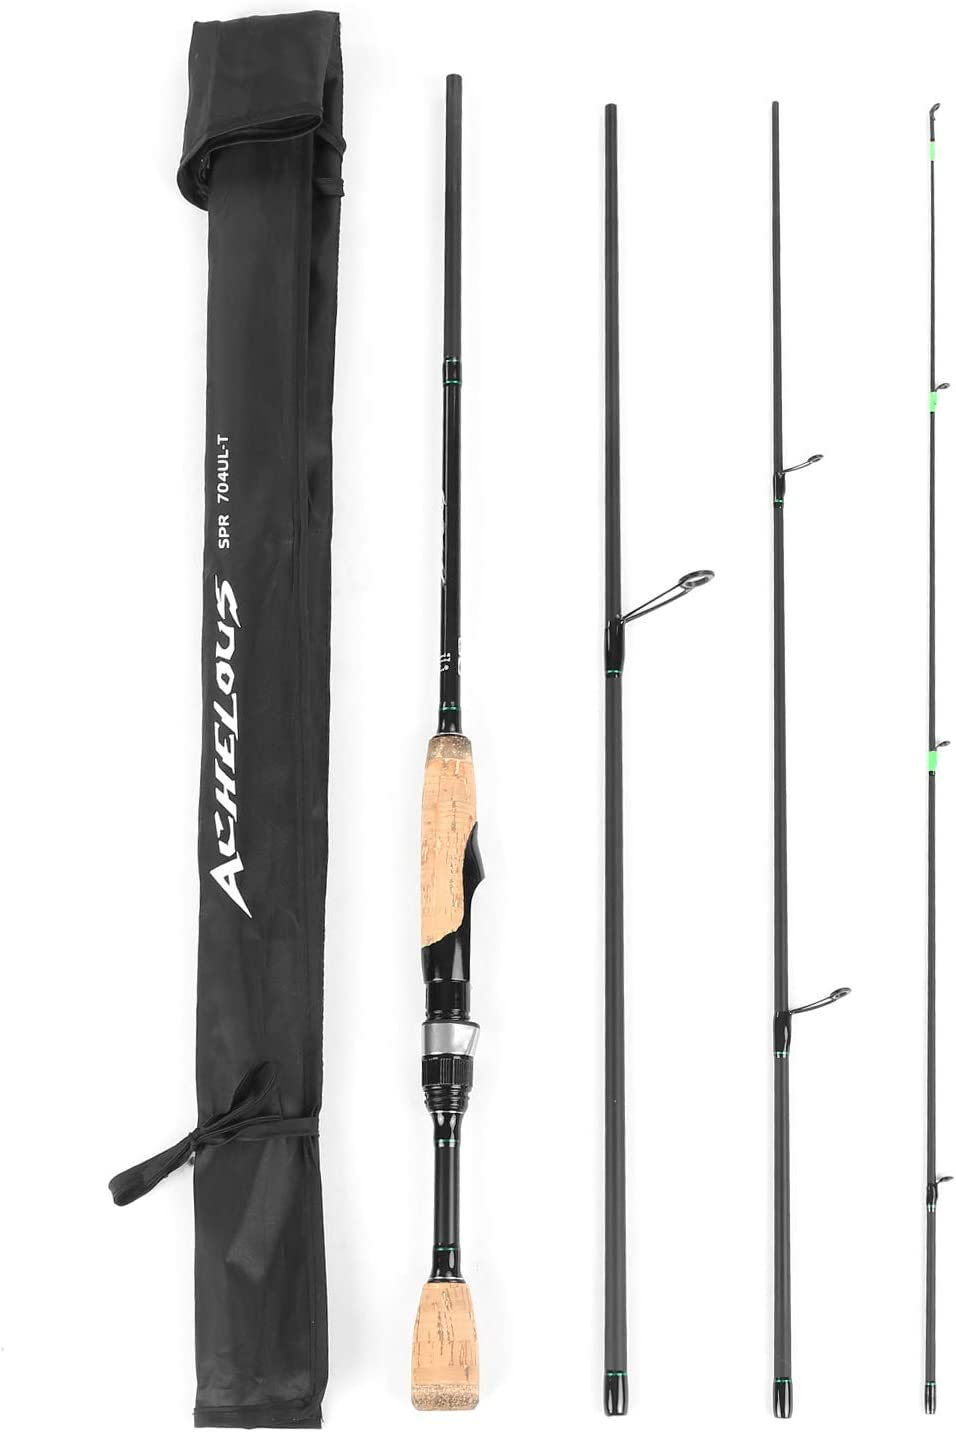 Portable Travel Spinning 6.8FT Fishing Rod- Best Bass Fishing Rod For Beginners